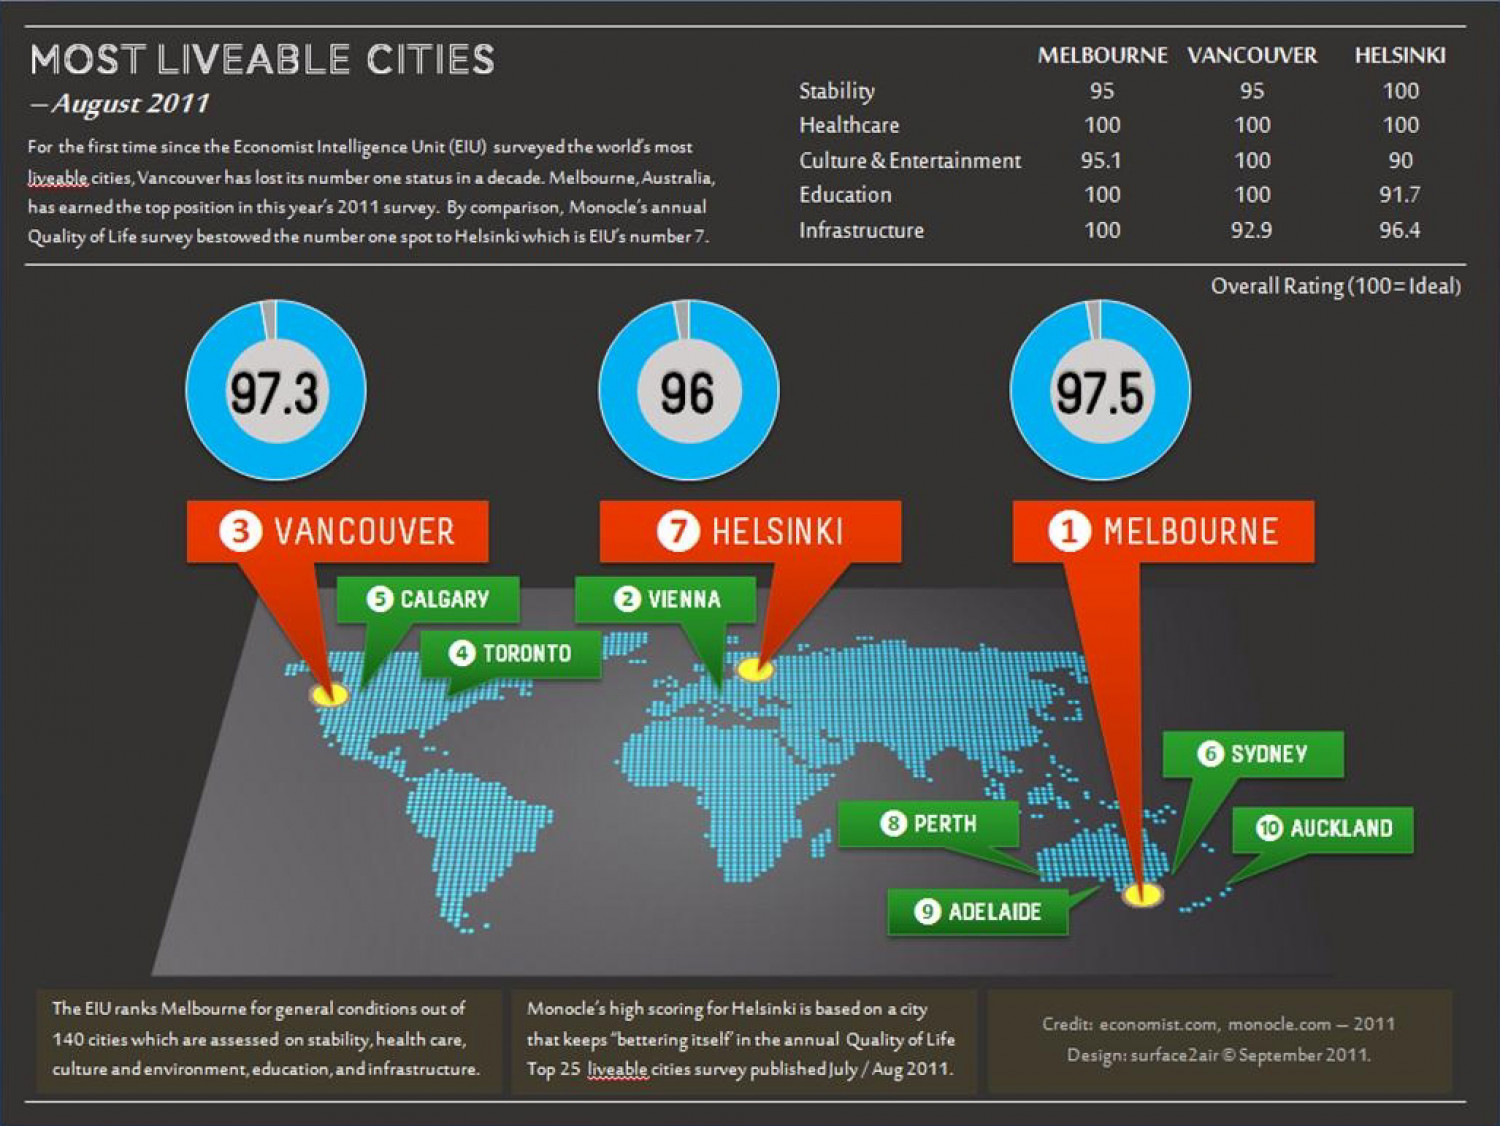 Most Liveable Cities - August 2011 Infographic